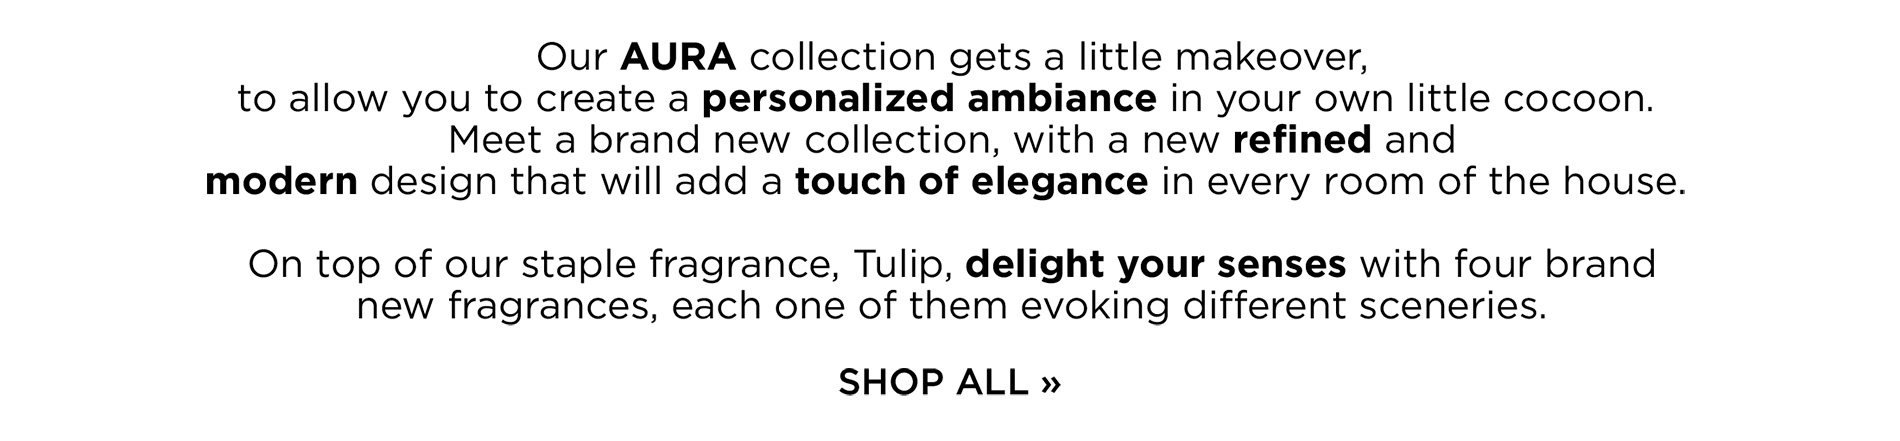 Our AURA collection gets a little makeover, to allow you to create a personalized ambiance in your own little cocoon. Meet a brand new collection, with a new refined and modern design that will add a touch of elegance in every room of the house. On top of our staple fragrance, Tulip, delight your senses with four brand new fragrances, each one of them evoking different sceneries.